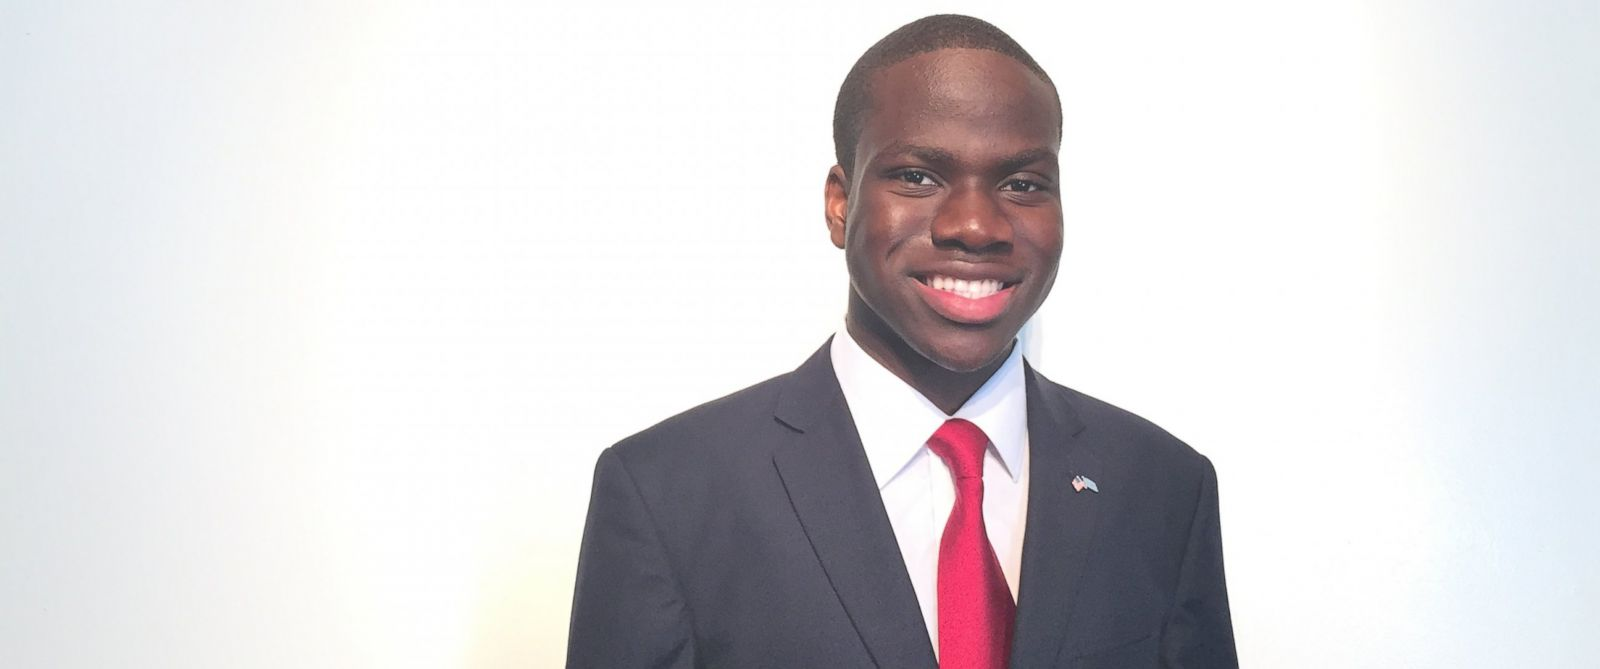 long island high schooler accepted by all ivy league colleges photo long island high schooler harold ekeh 17 was accepted to every college